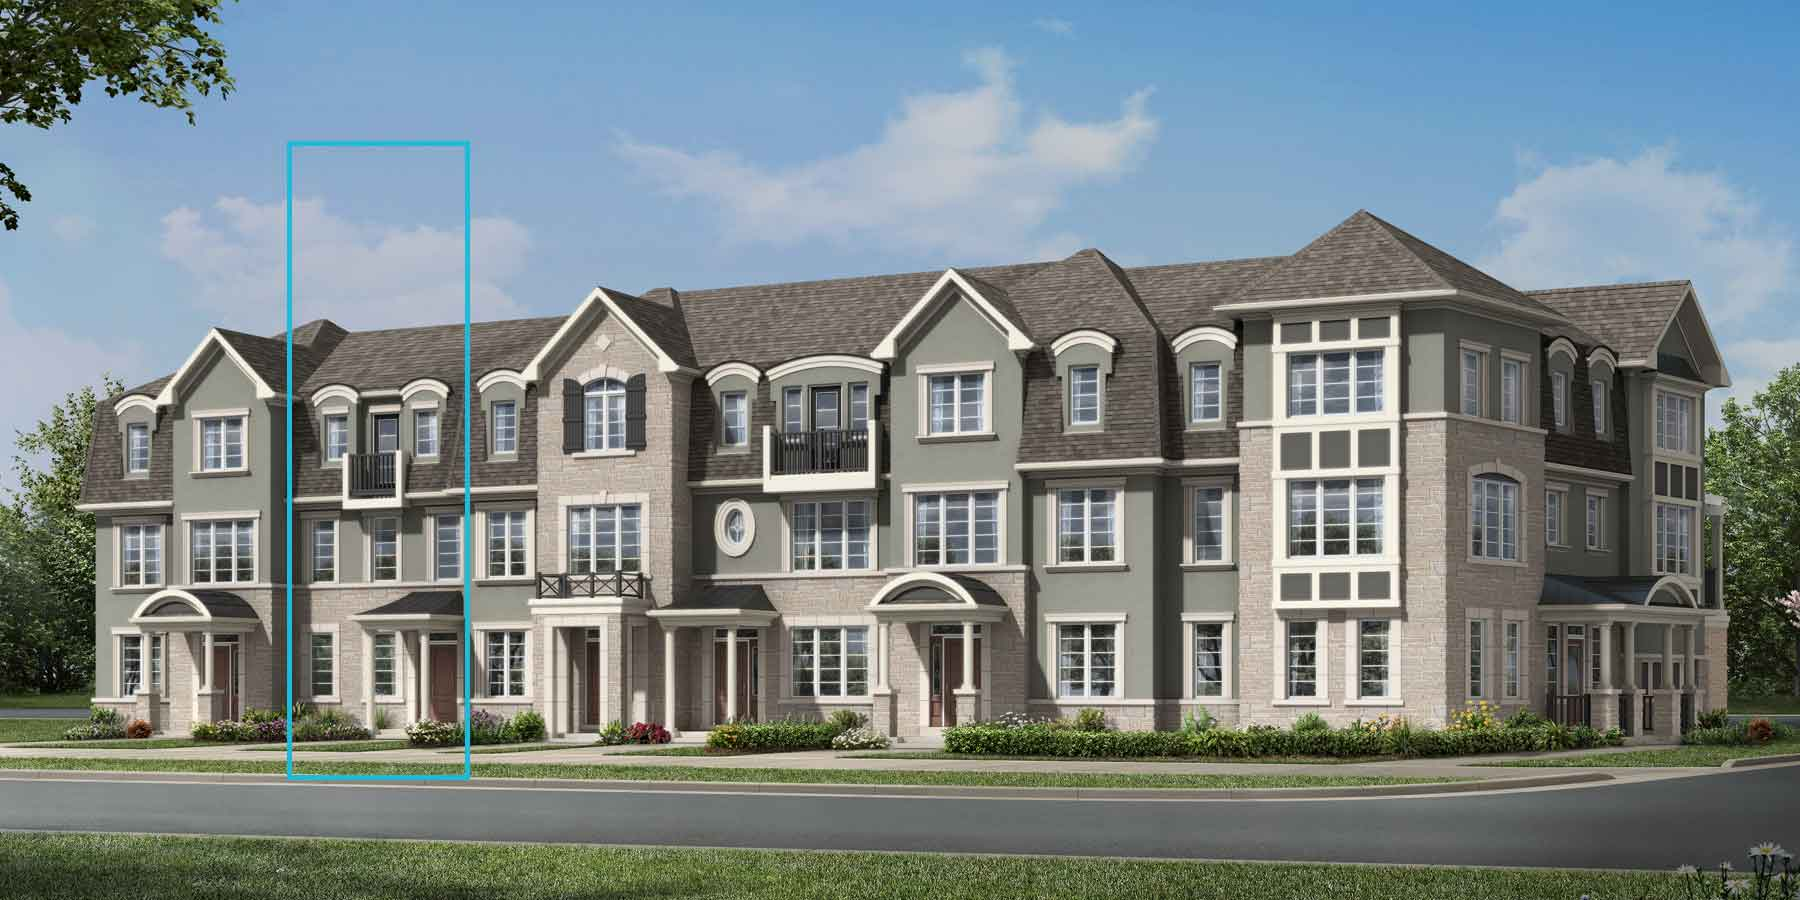 Windfield Plan TownHomes at Upper Joshua Creek in Oakville Ontario by Mattamy Homes